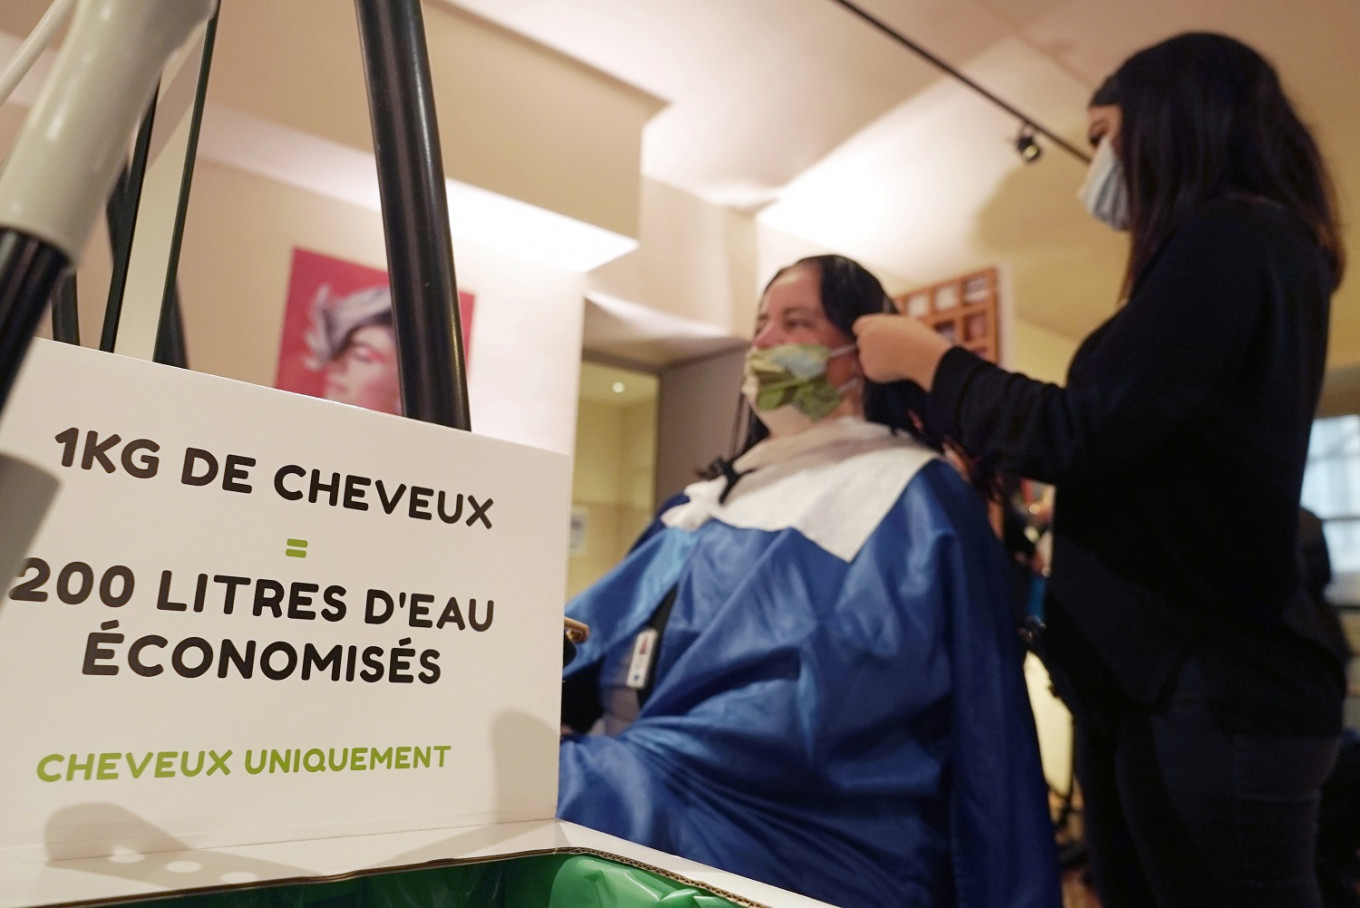 Versailles palace staff get free haircuts to help planet